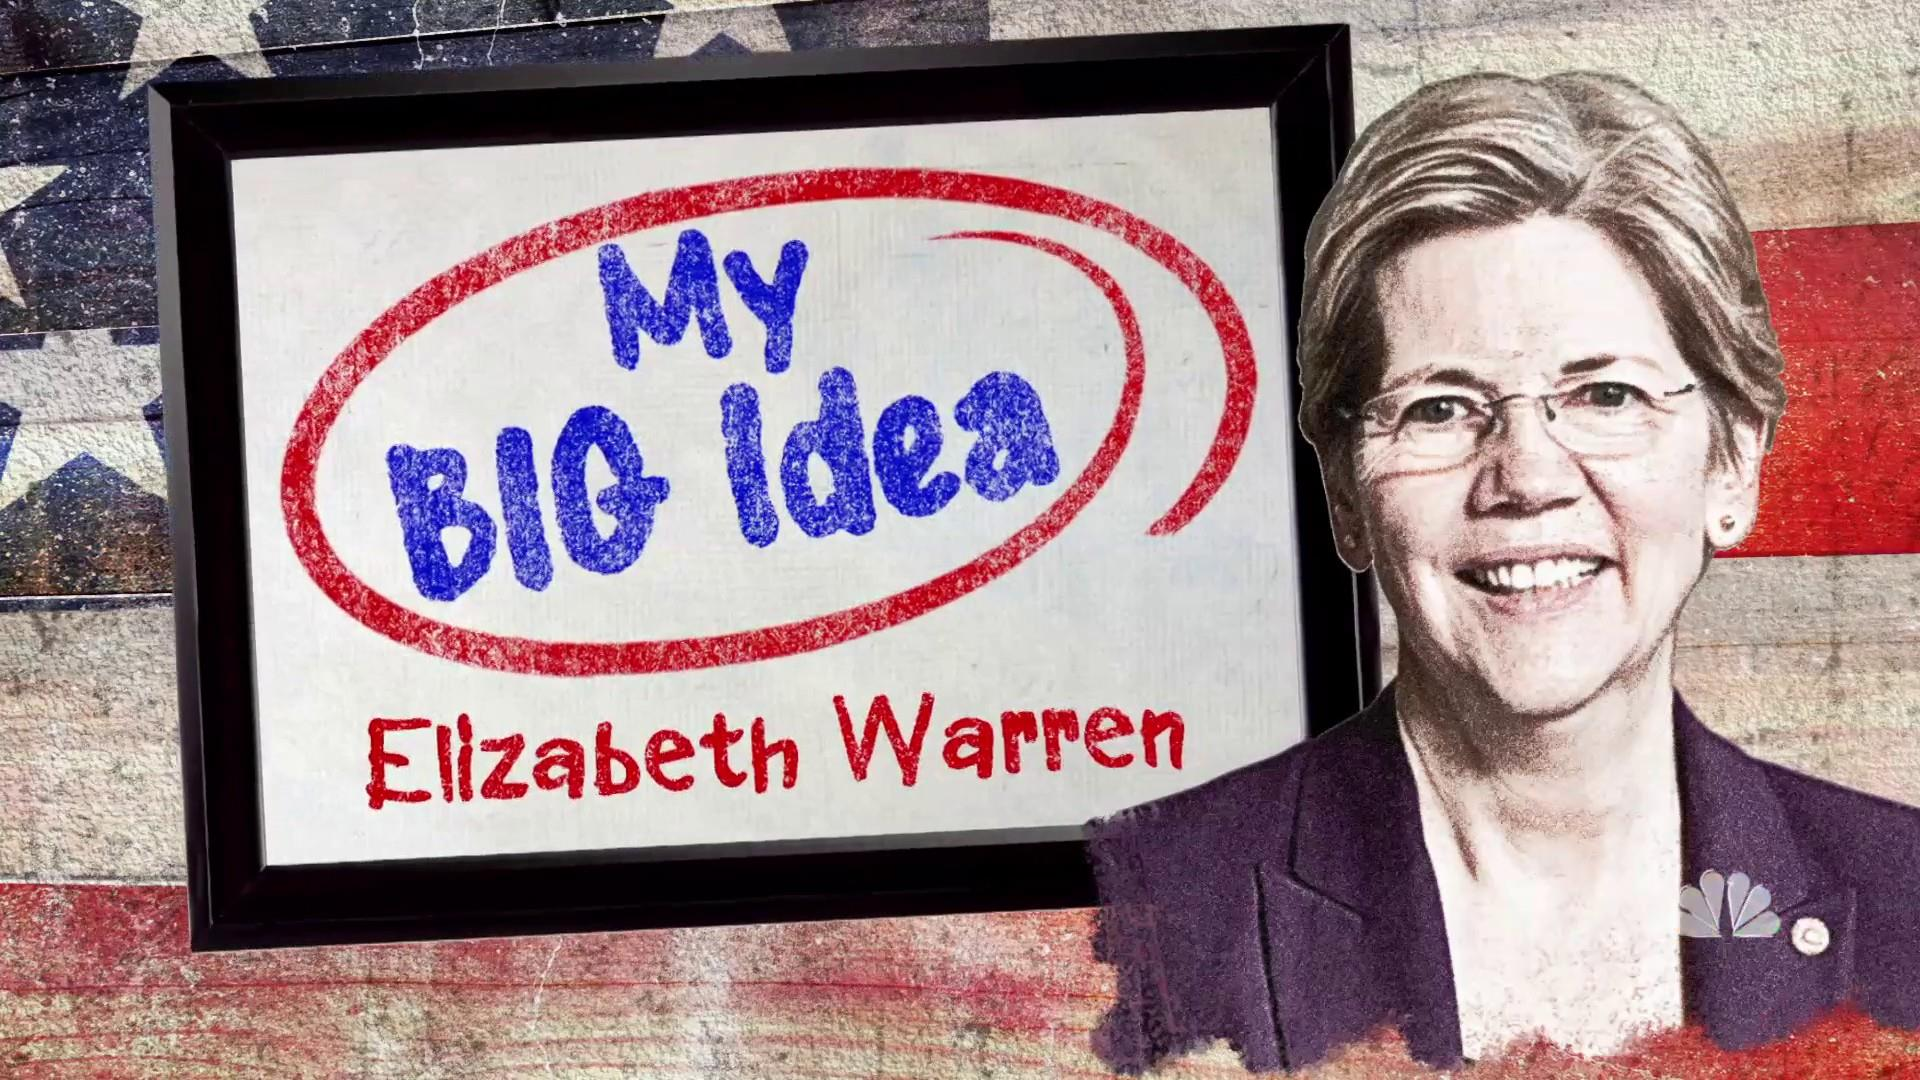 Elizabeth Warren shares her Big Idea for America's college students